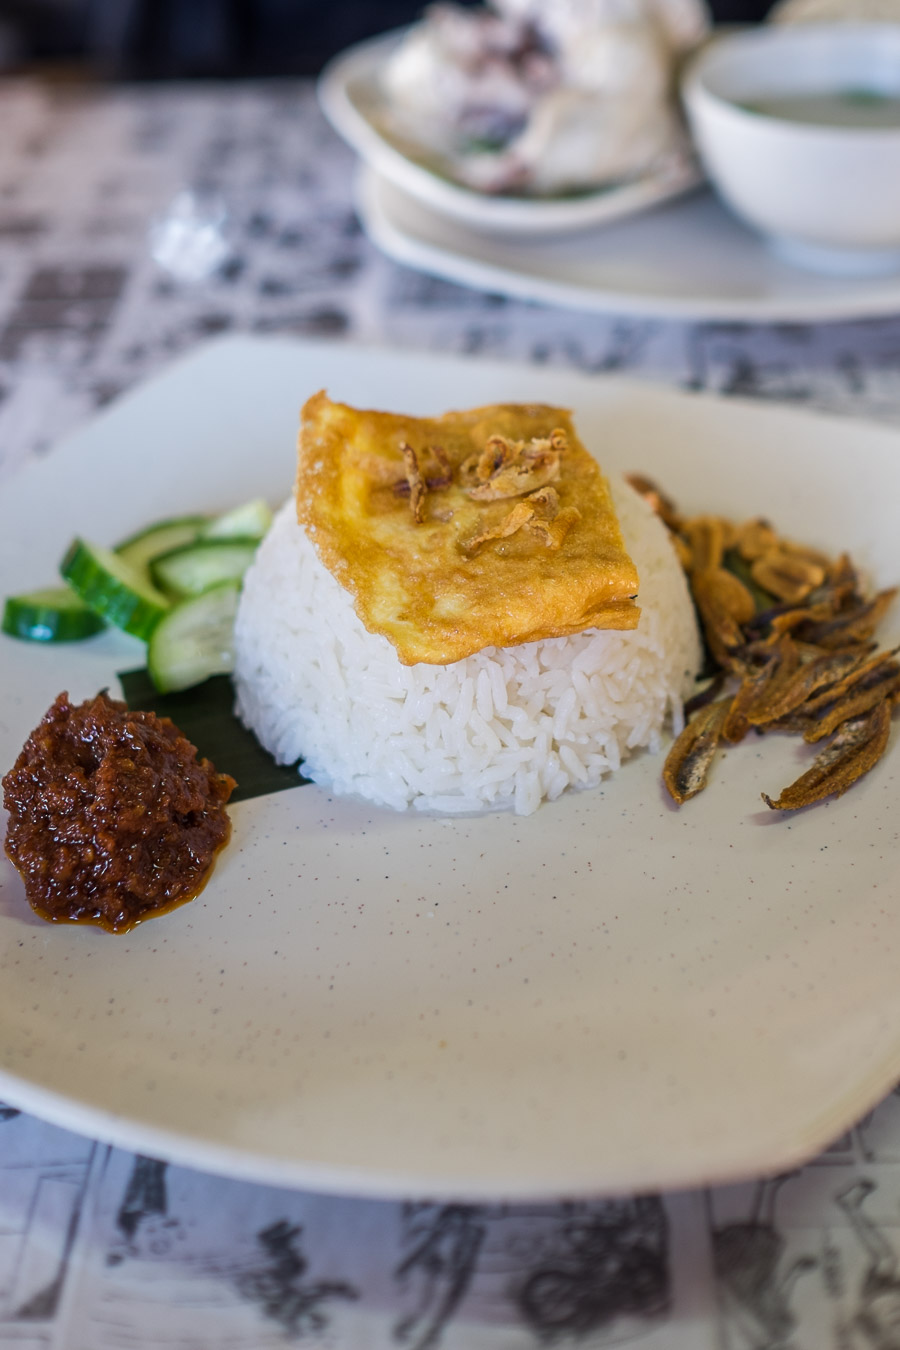 Nasi lemak with egg (AU$4.50)